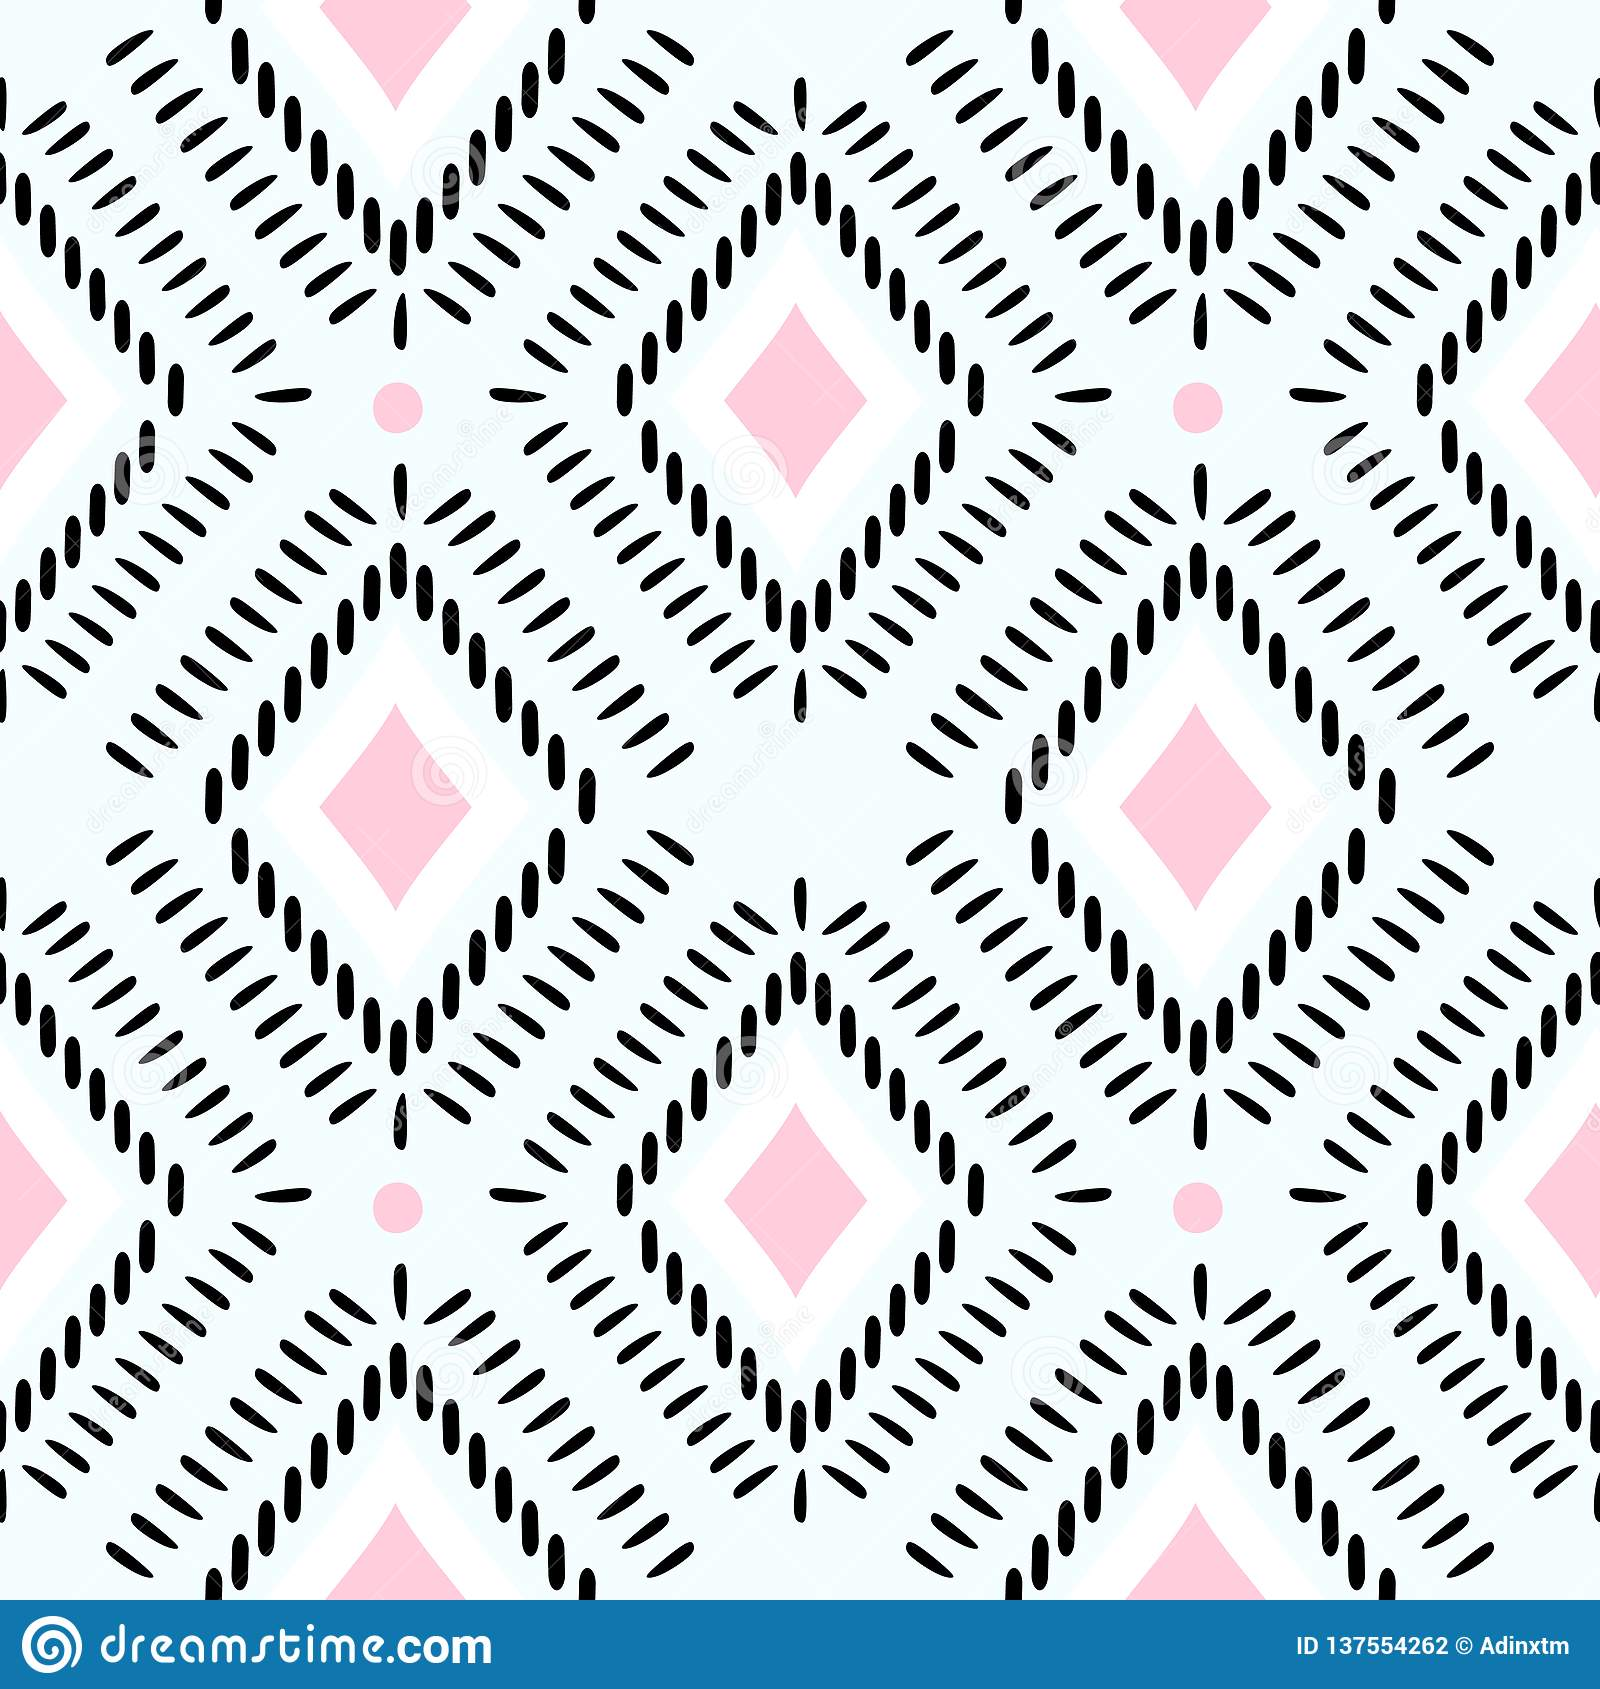 Ethnic tribal seamless pattern vector illustration, mandala abstract, ancient stripes aztec african style background vintage.